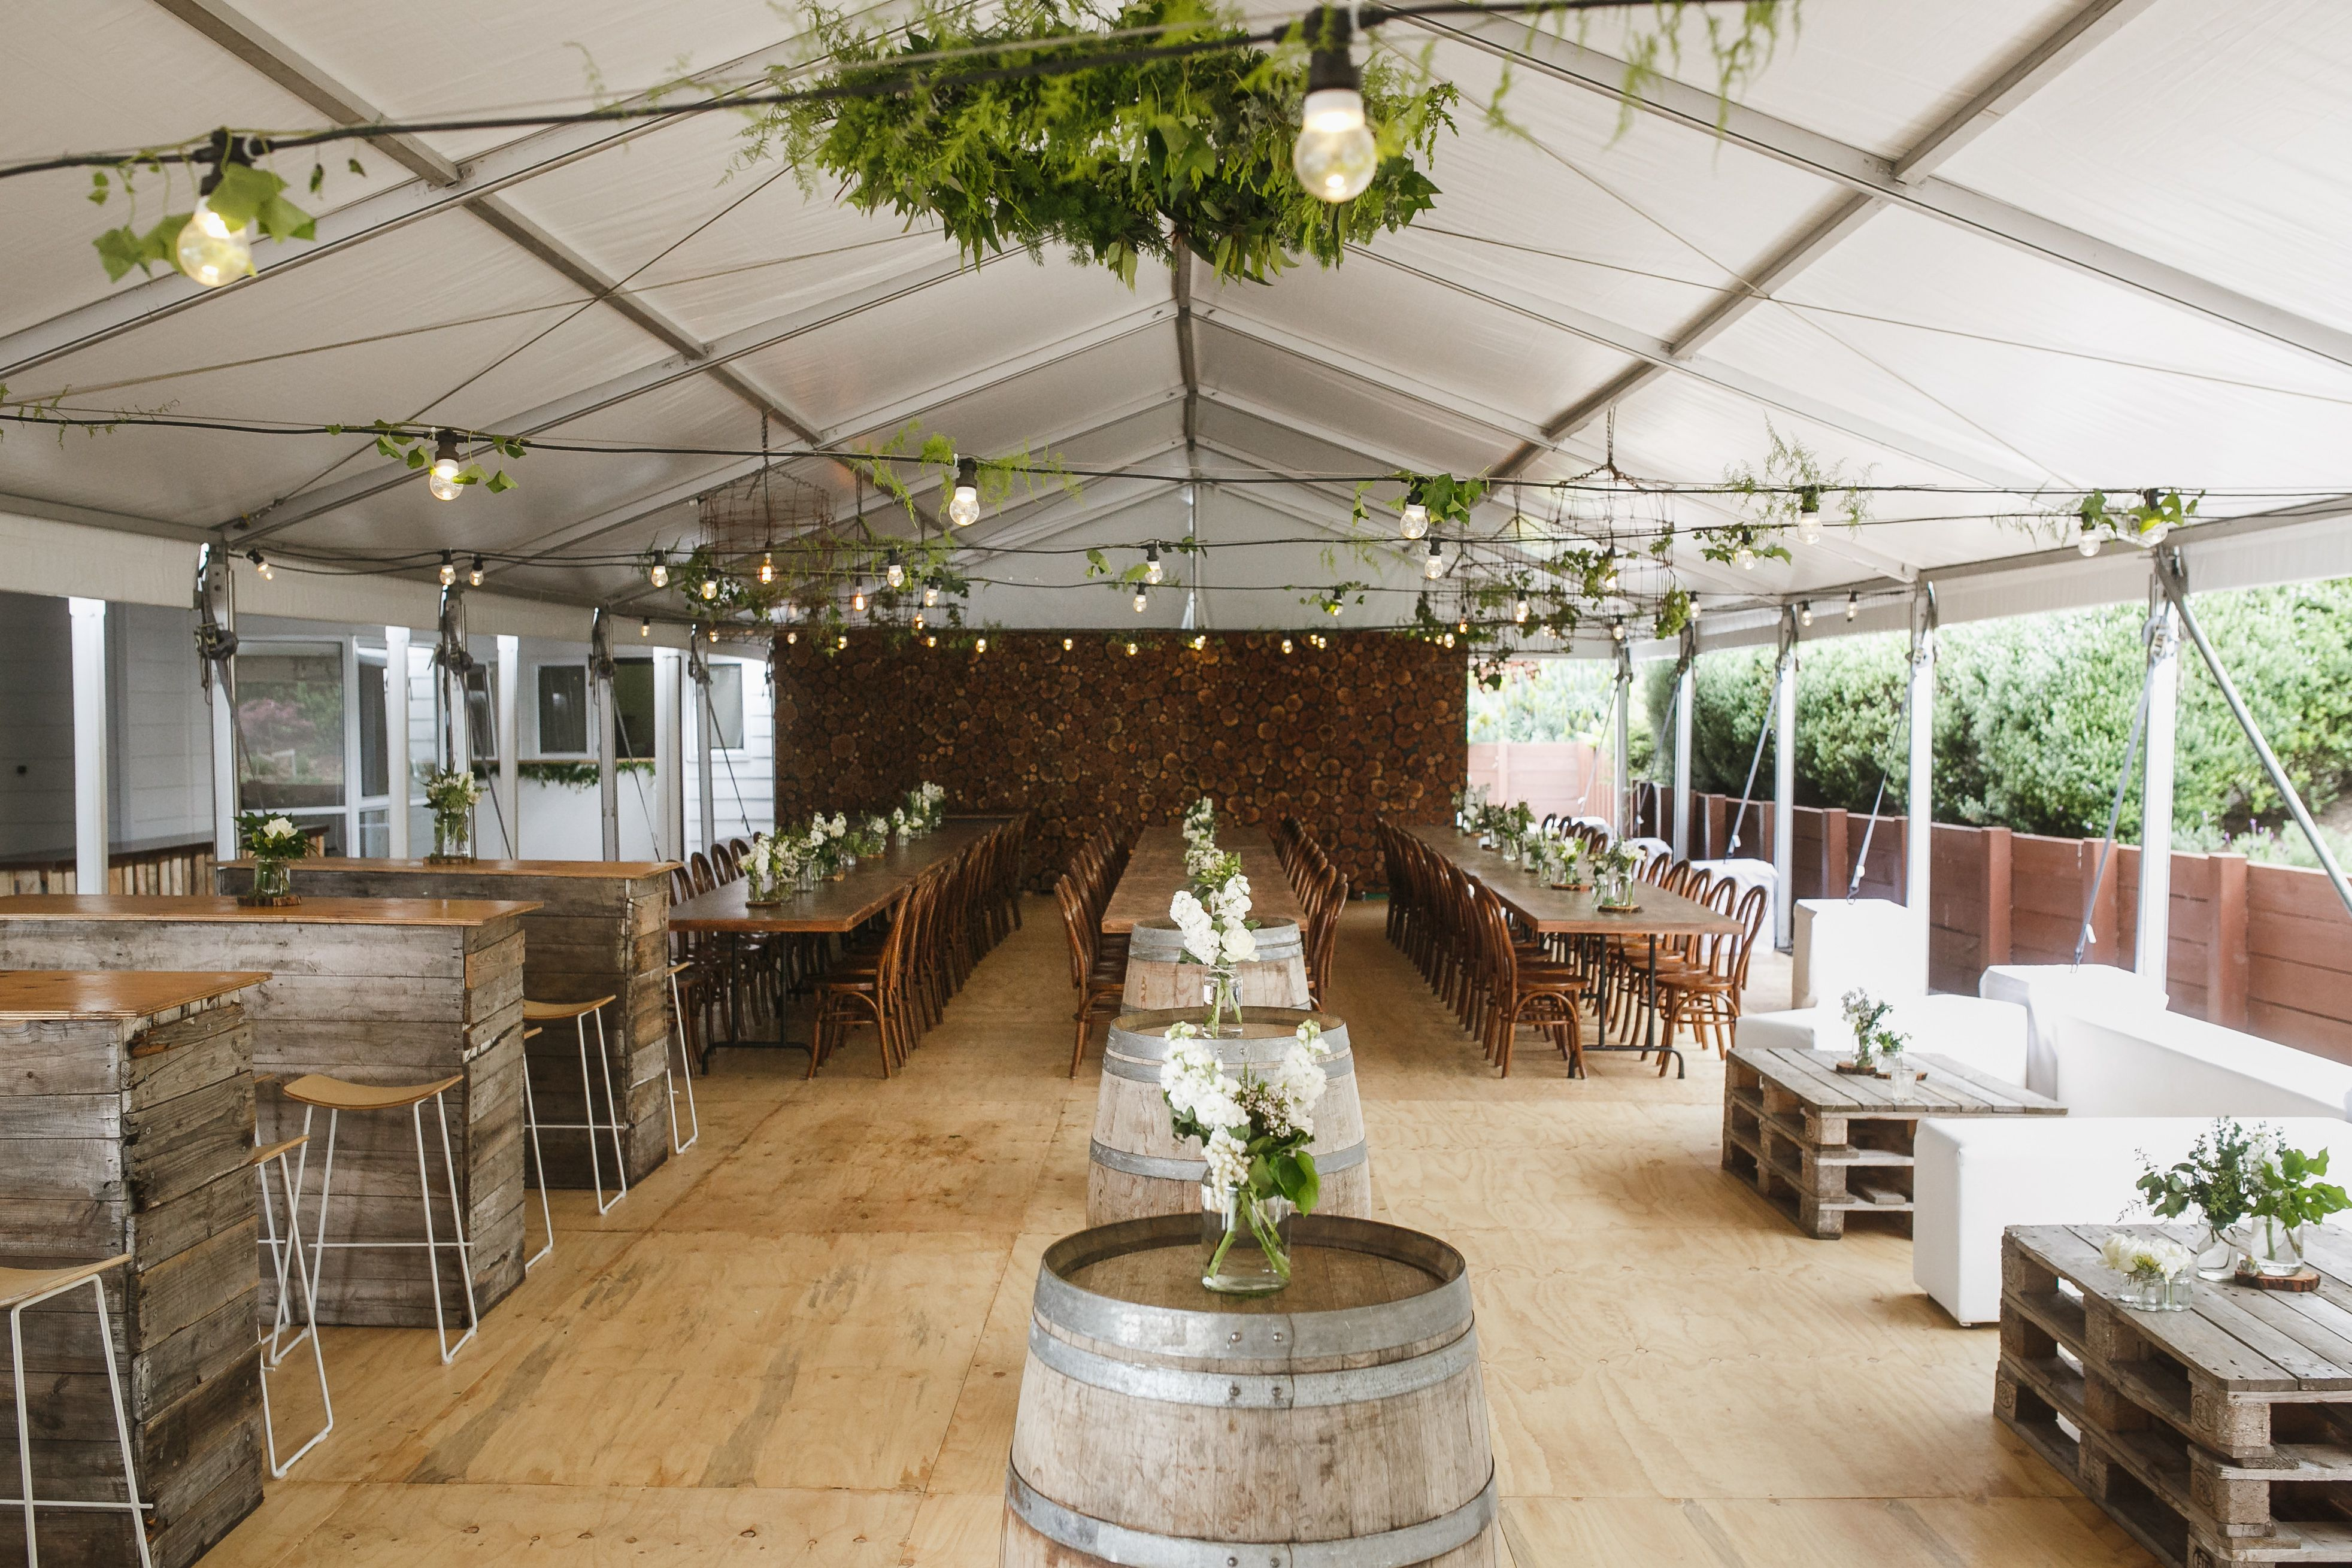 Rustic backyard marquee wedding wine barrels pallet furniture ottomans timber trestle tables and bentwood chairs hire and styling by over the top events